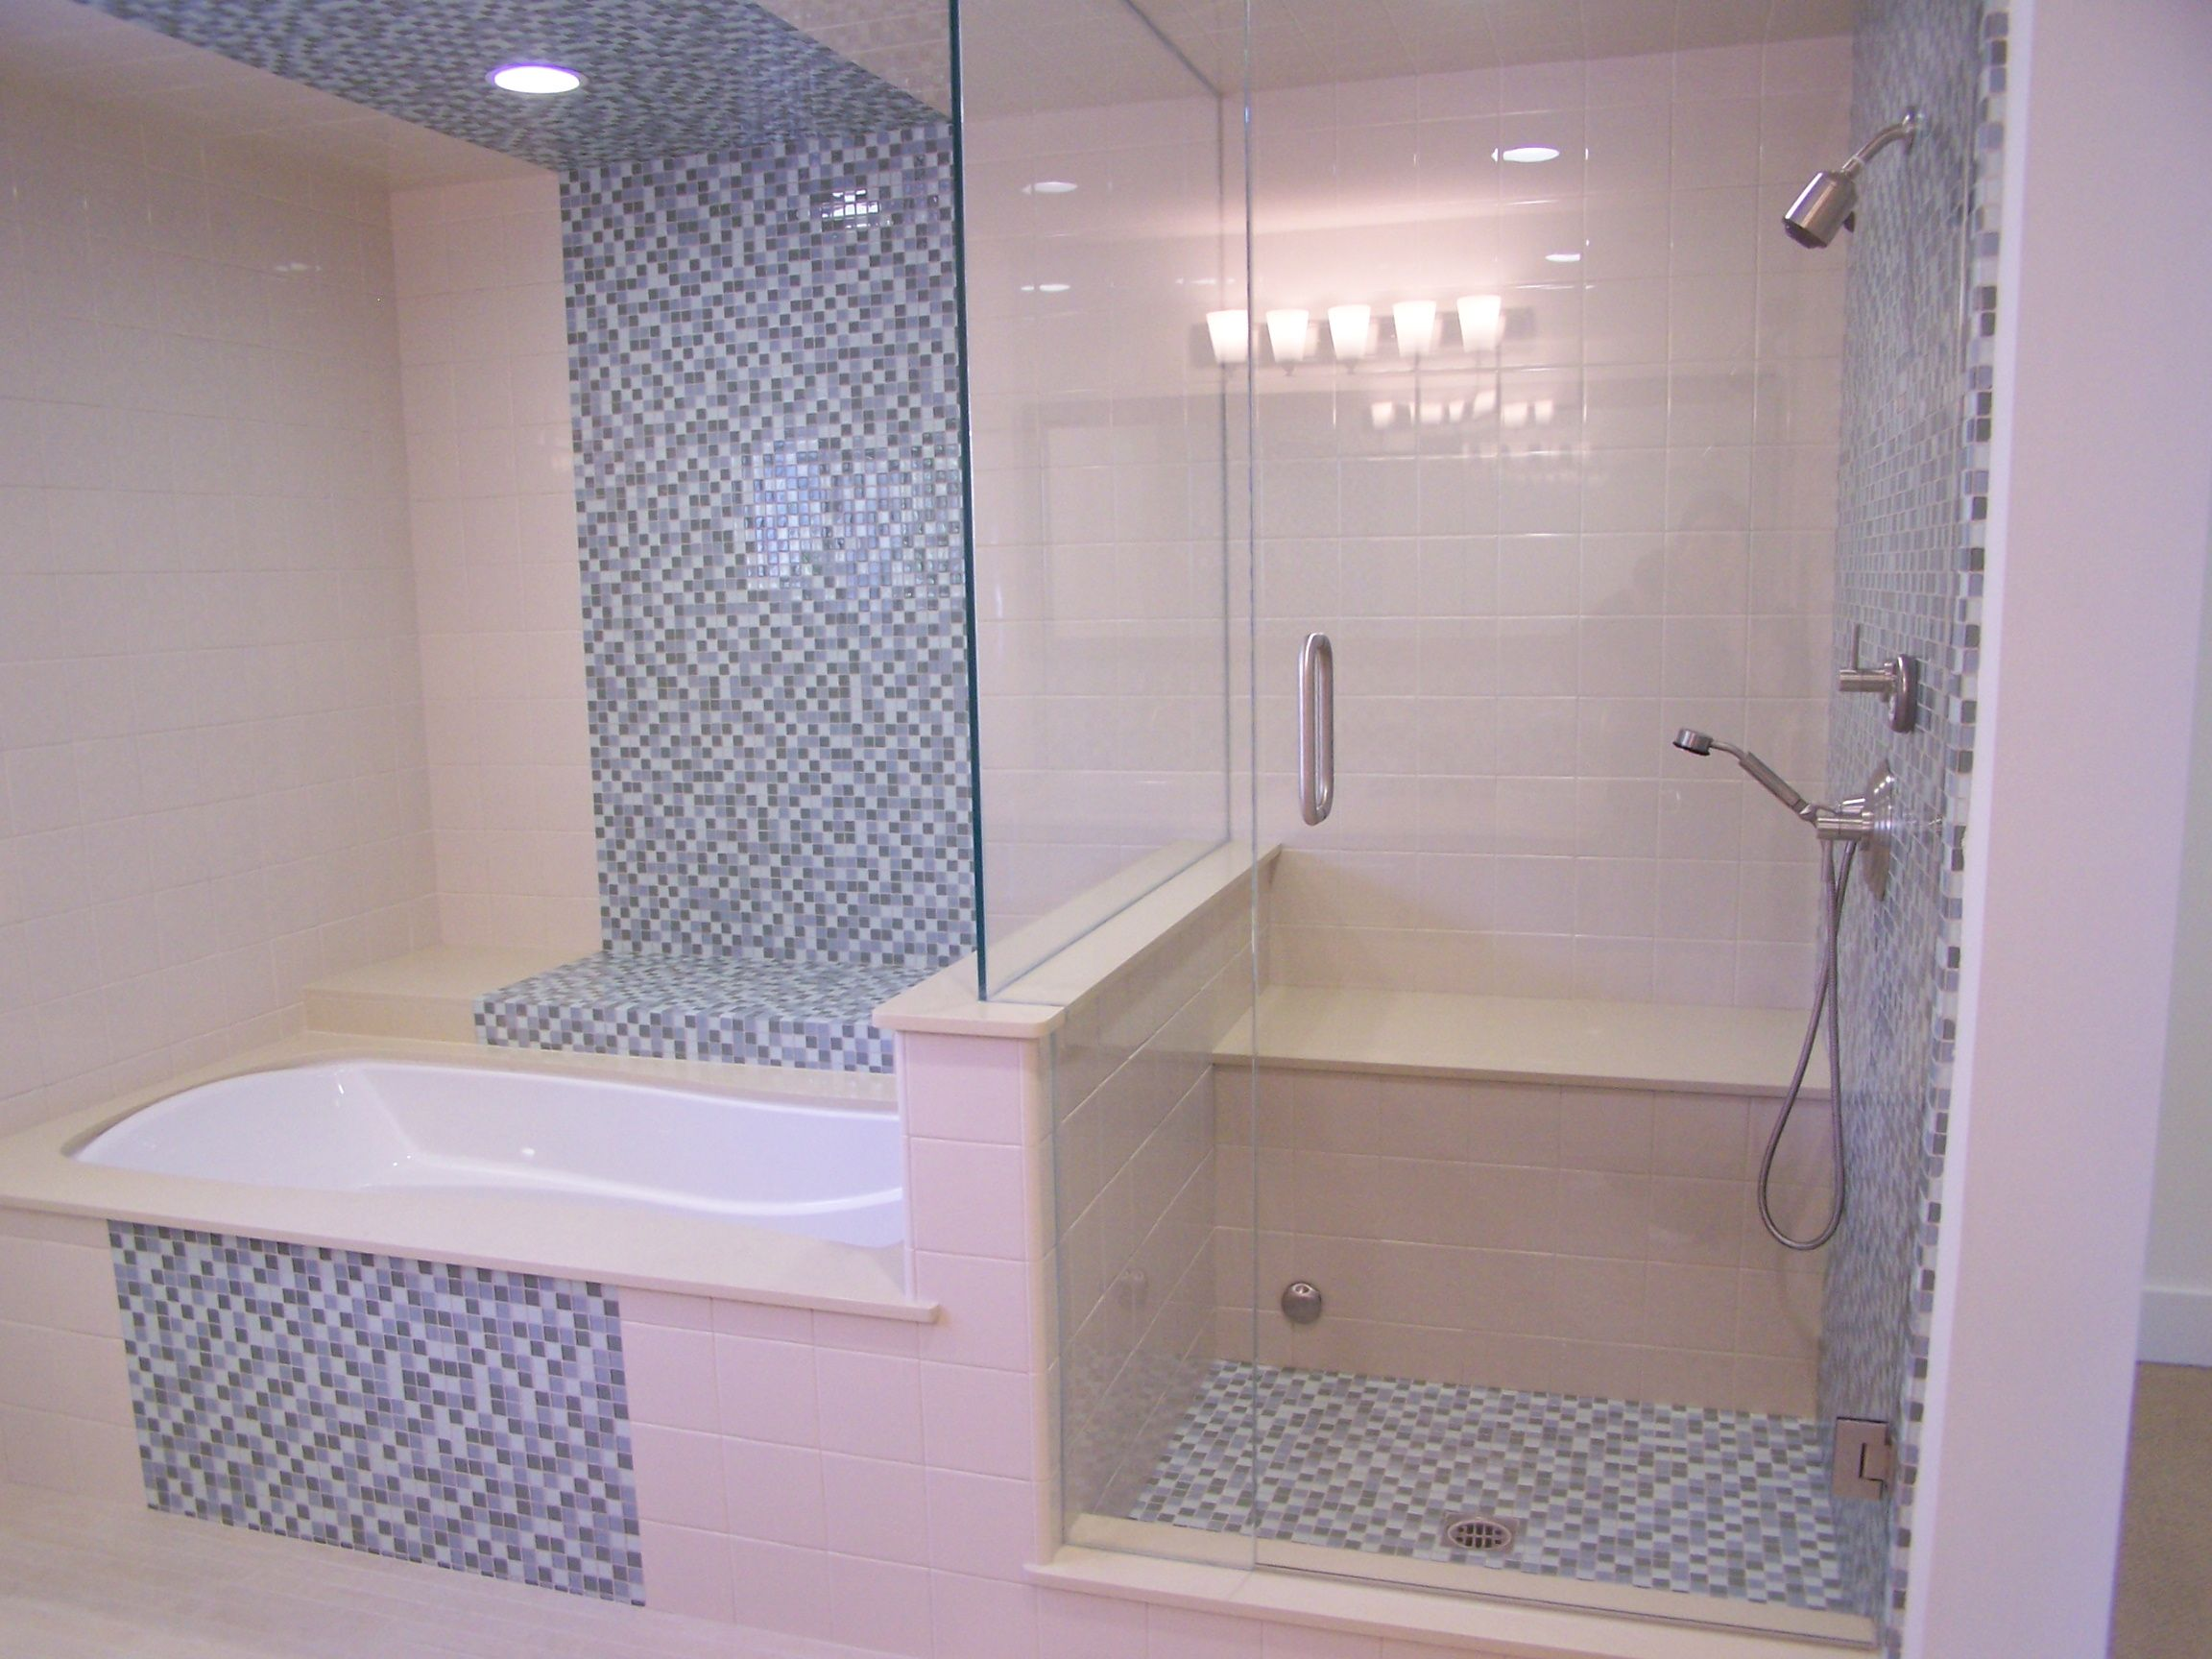 how to tile a bathroom walls as well as showertub area - Bathroom Designs Tiles